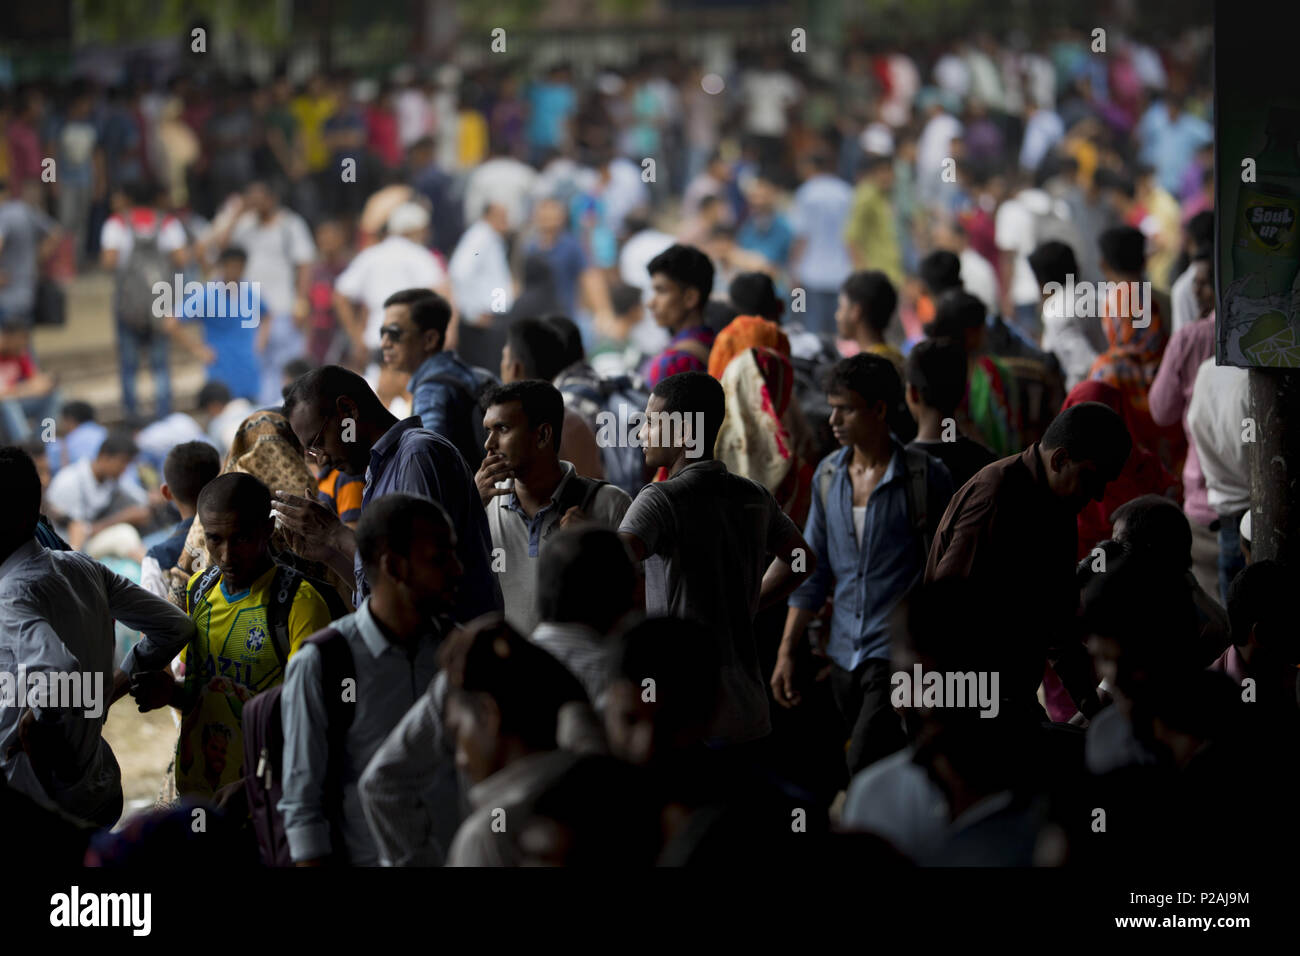 """June 14, 2018 - June 14, 2018, Dhaka, Bangladesh ''"""" Bangladeshis people travel by train as they going their home to be with their families ahead of the Muslim festival of Eid al-Fitr, in Dhaka. Eid al-Fitr, the biggest Muslim festival celebrates the end of the holy fasting month of Ramadan. Credit: K M Asad/ZUMA Wire/Alamy Live News - Stock Image"""